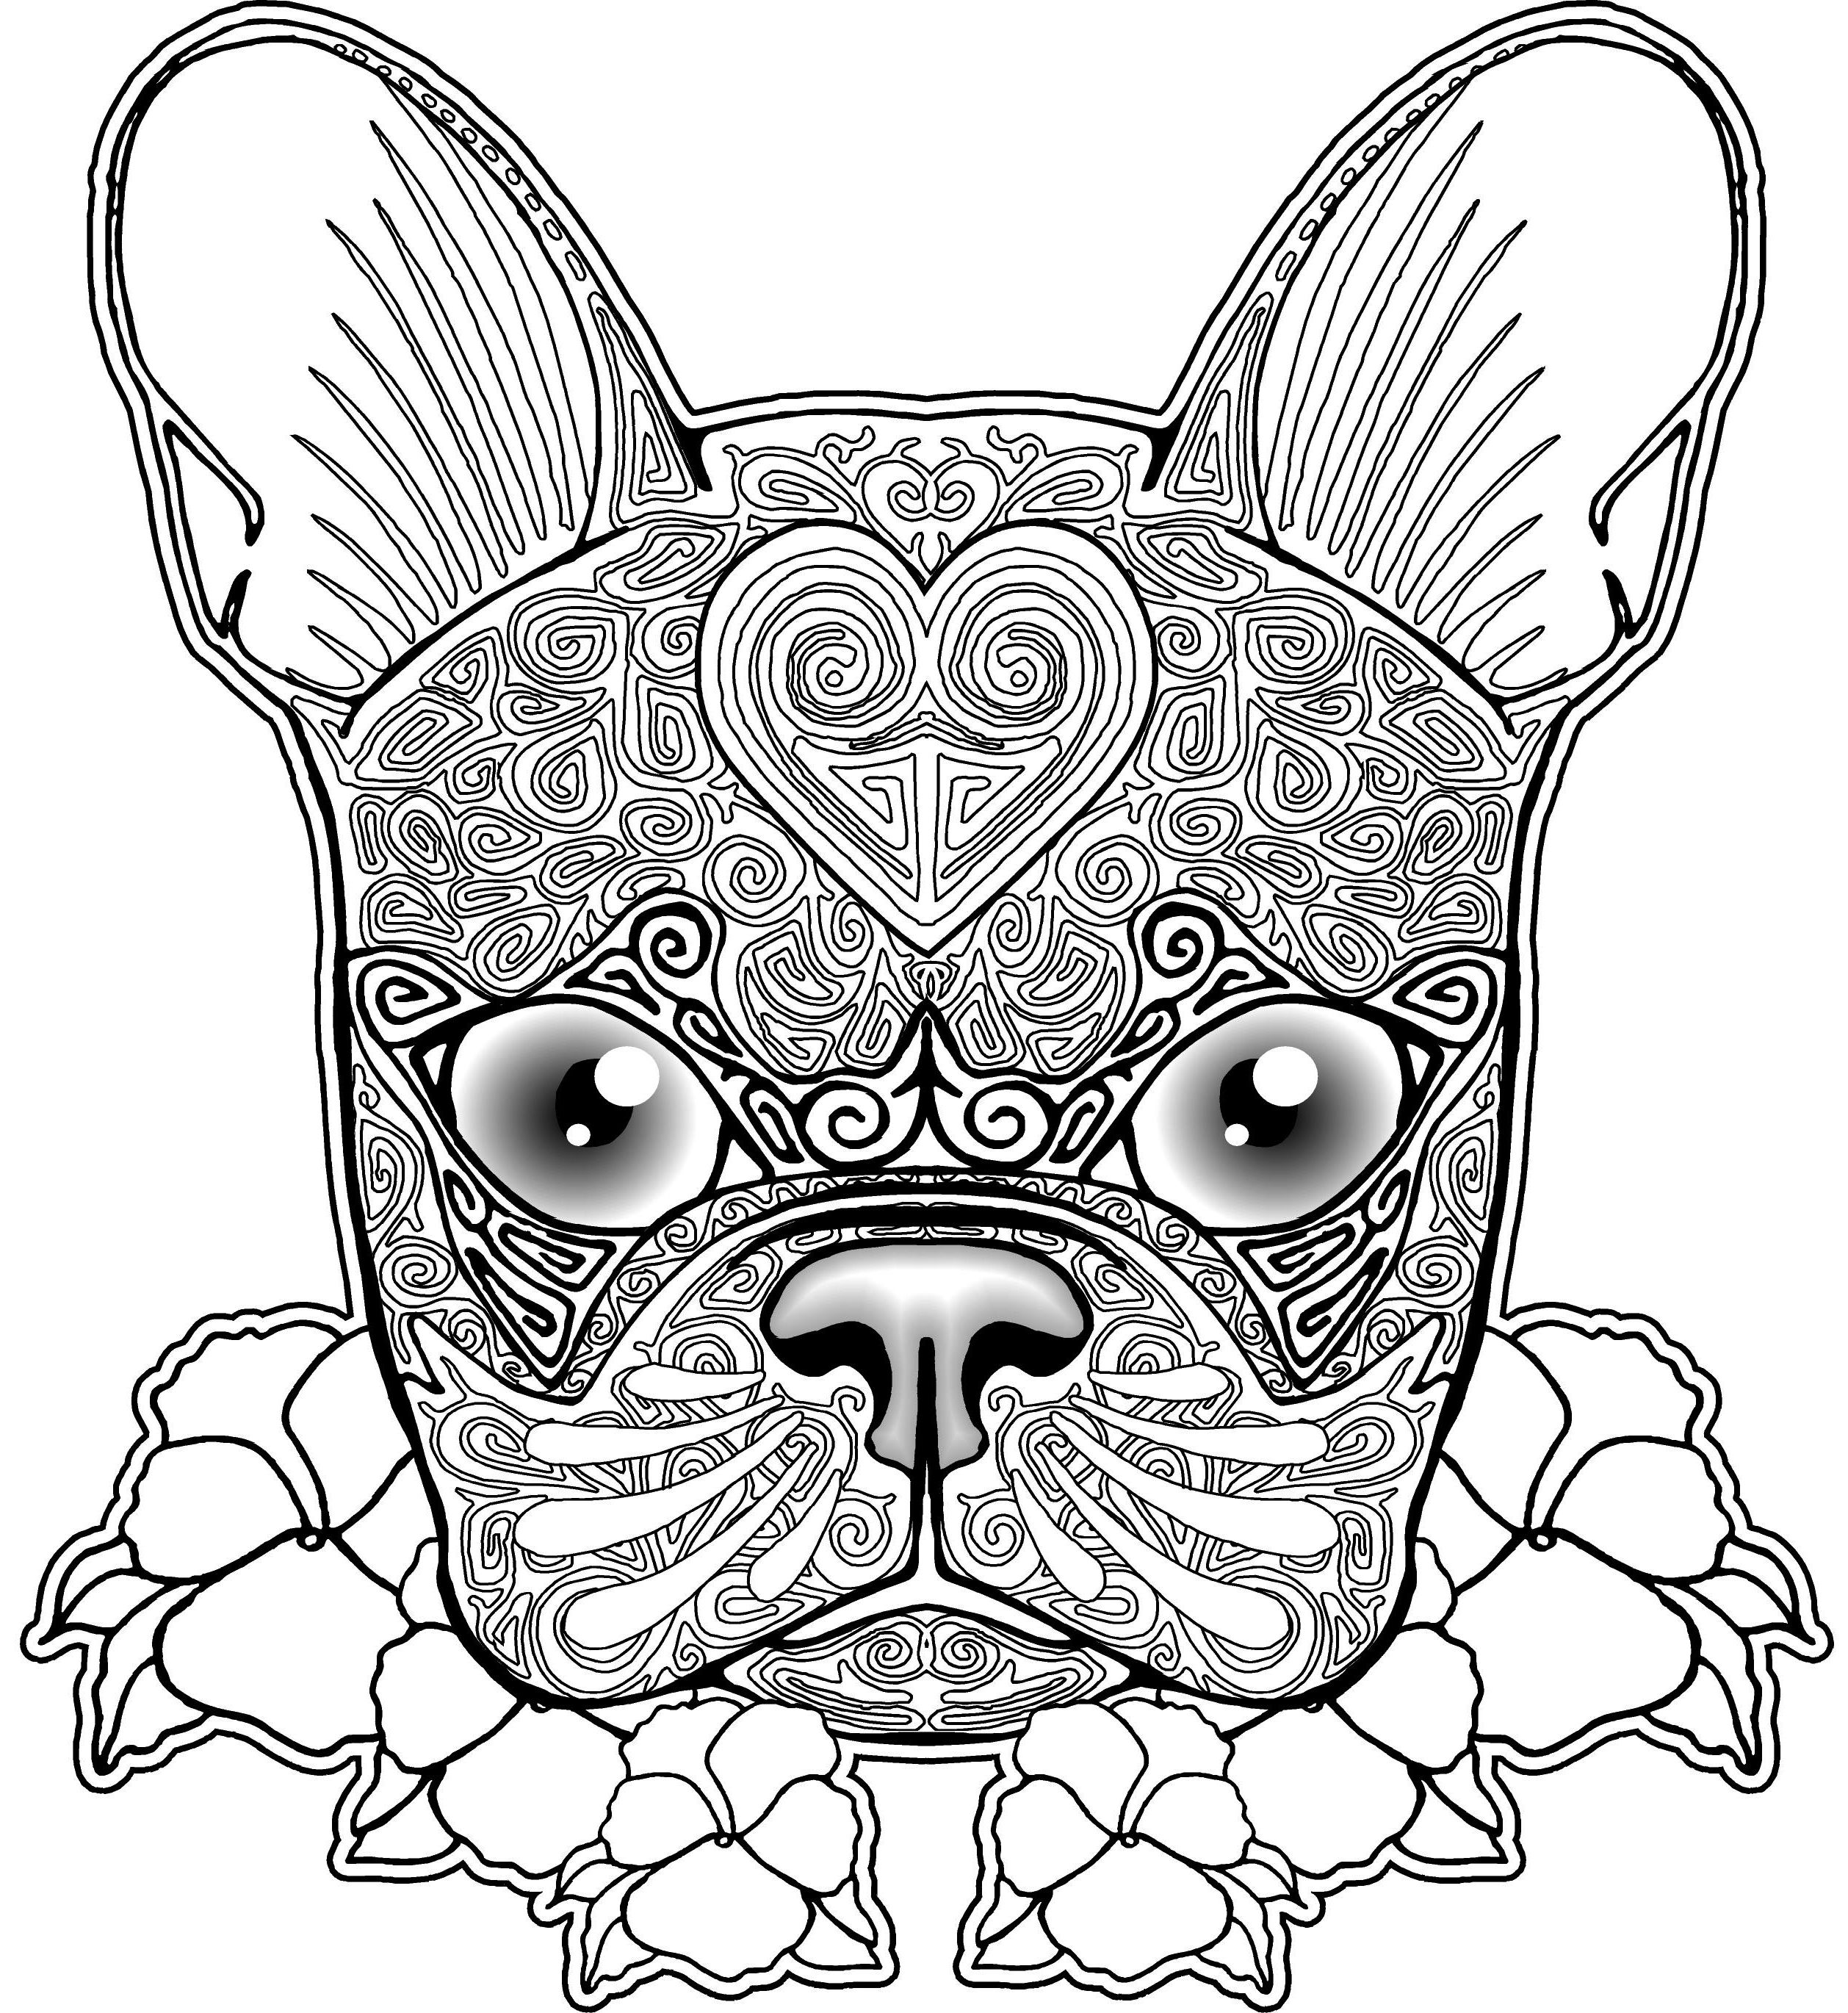 10 Free Dog Coloring Pages For Adults Puppy Coloring Pages Dog